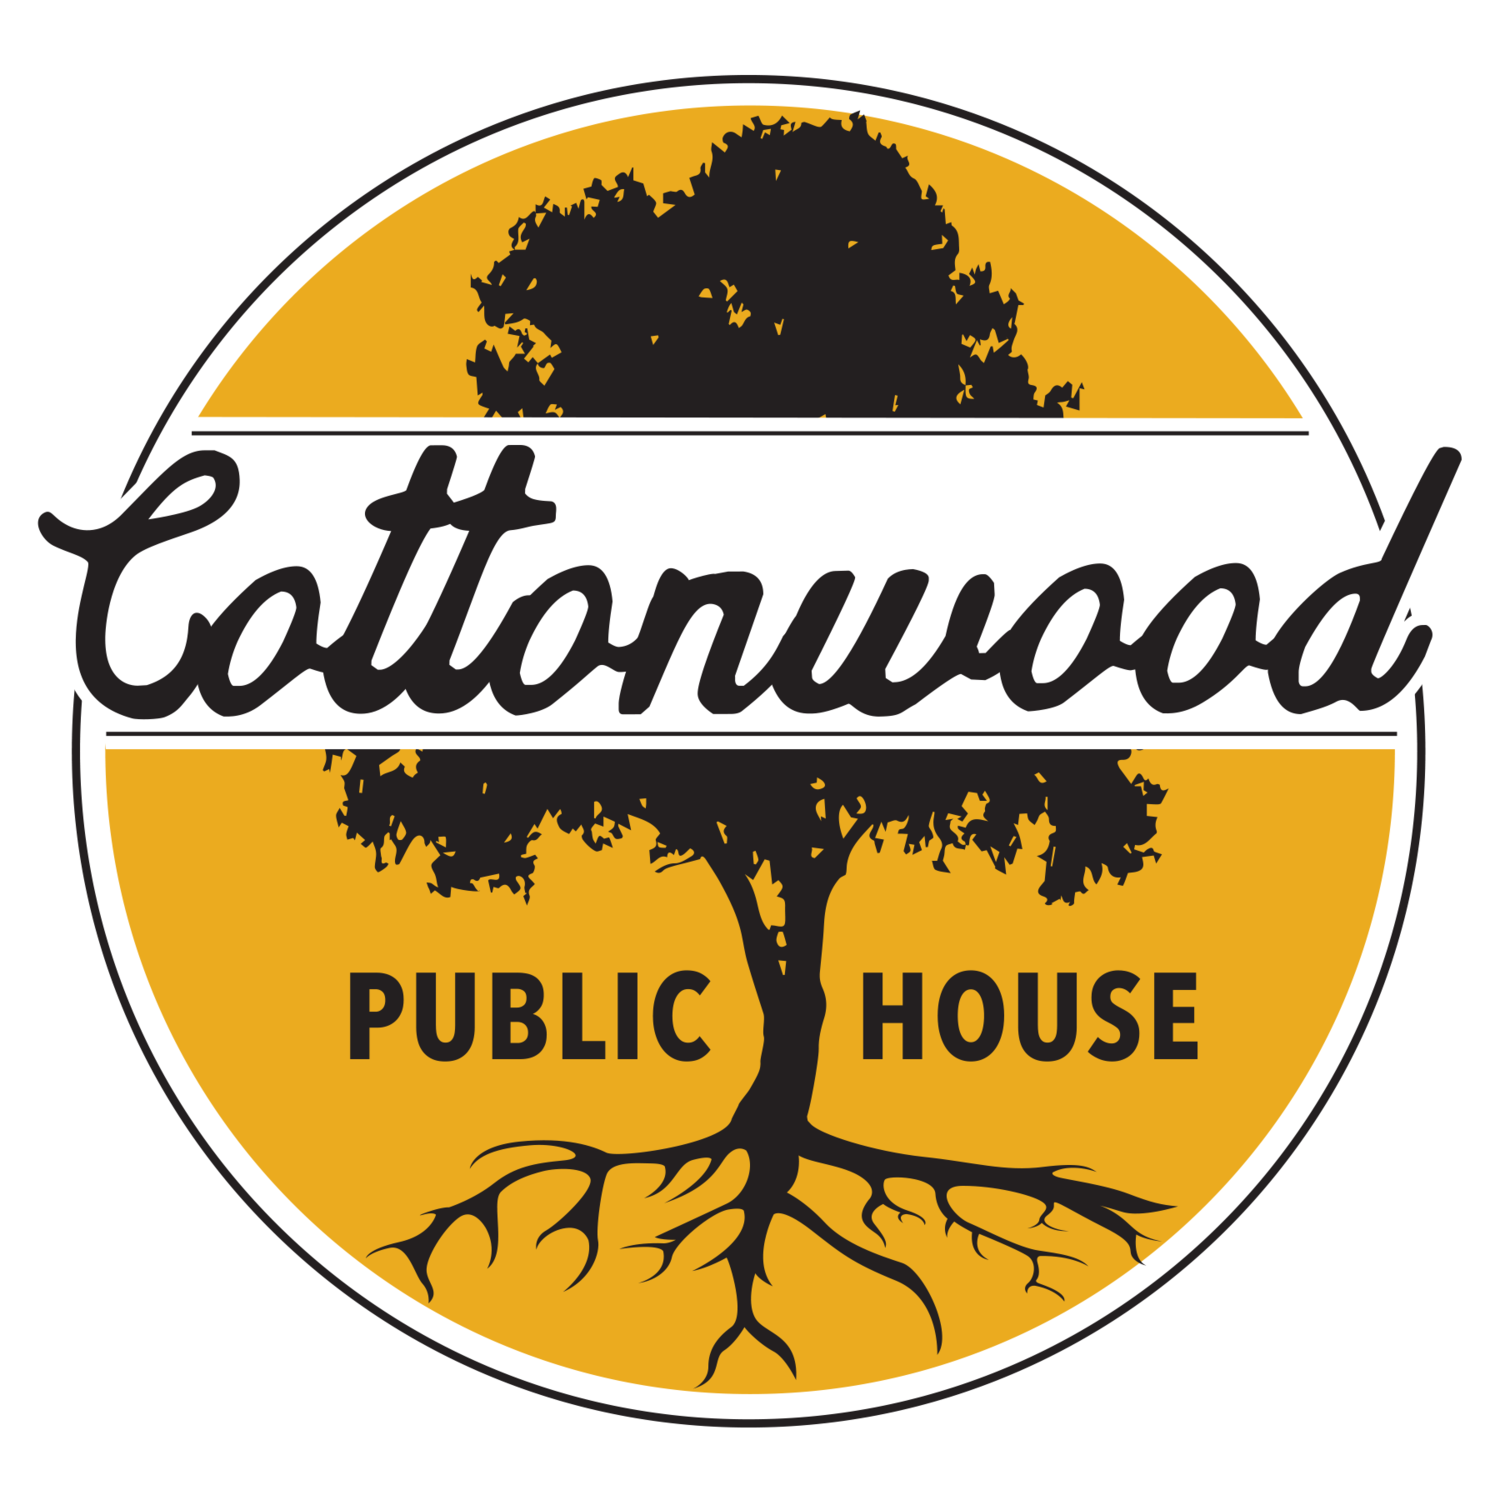 Cottonwood Public House